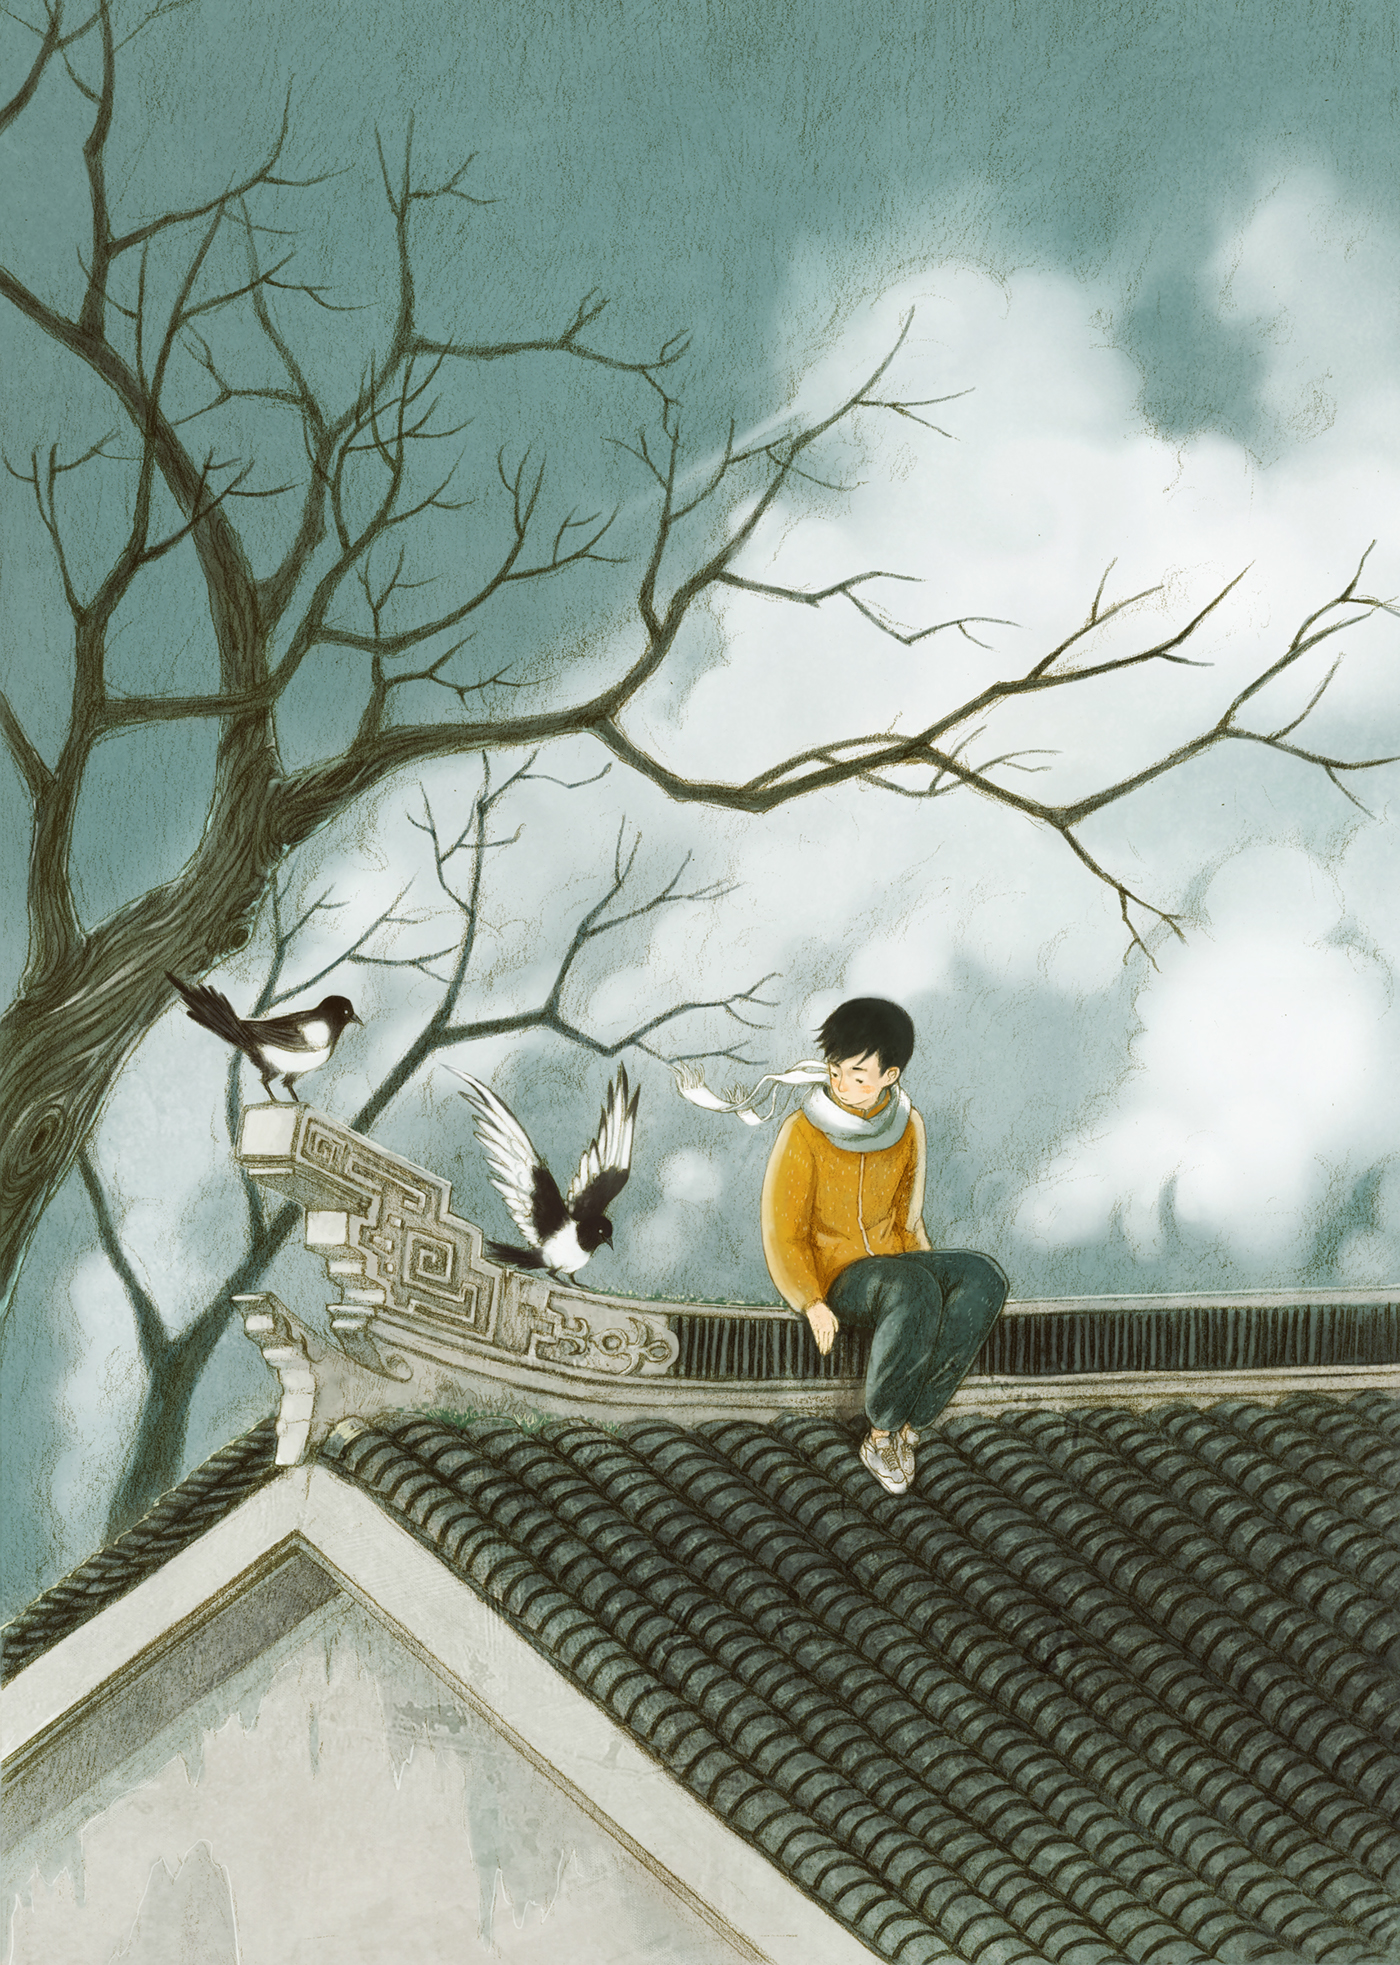 Beautiful Storybook Illustrations of People Communing with Nature by Jin Xingye